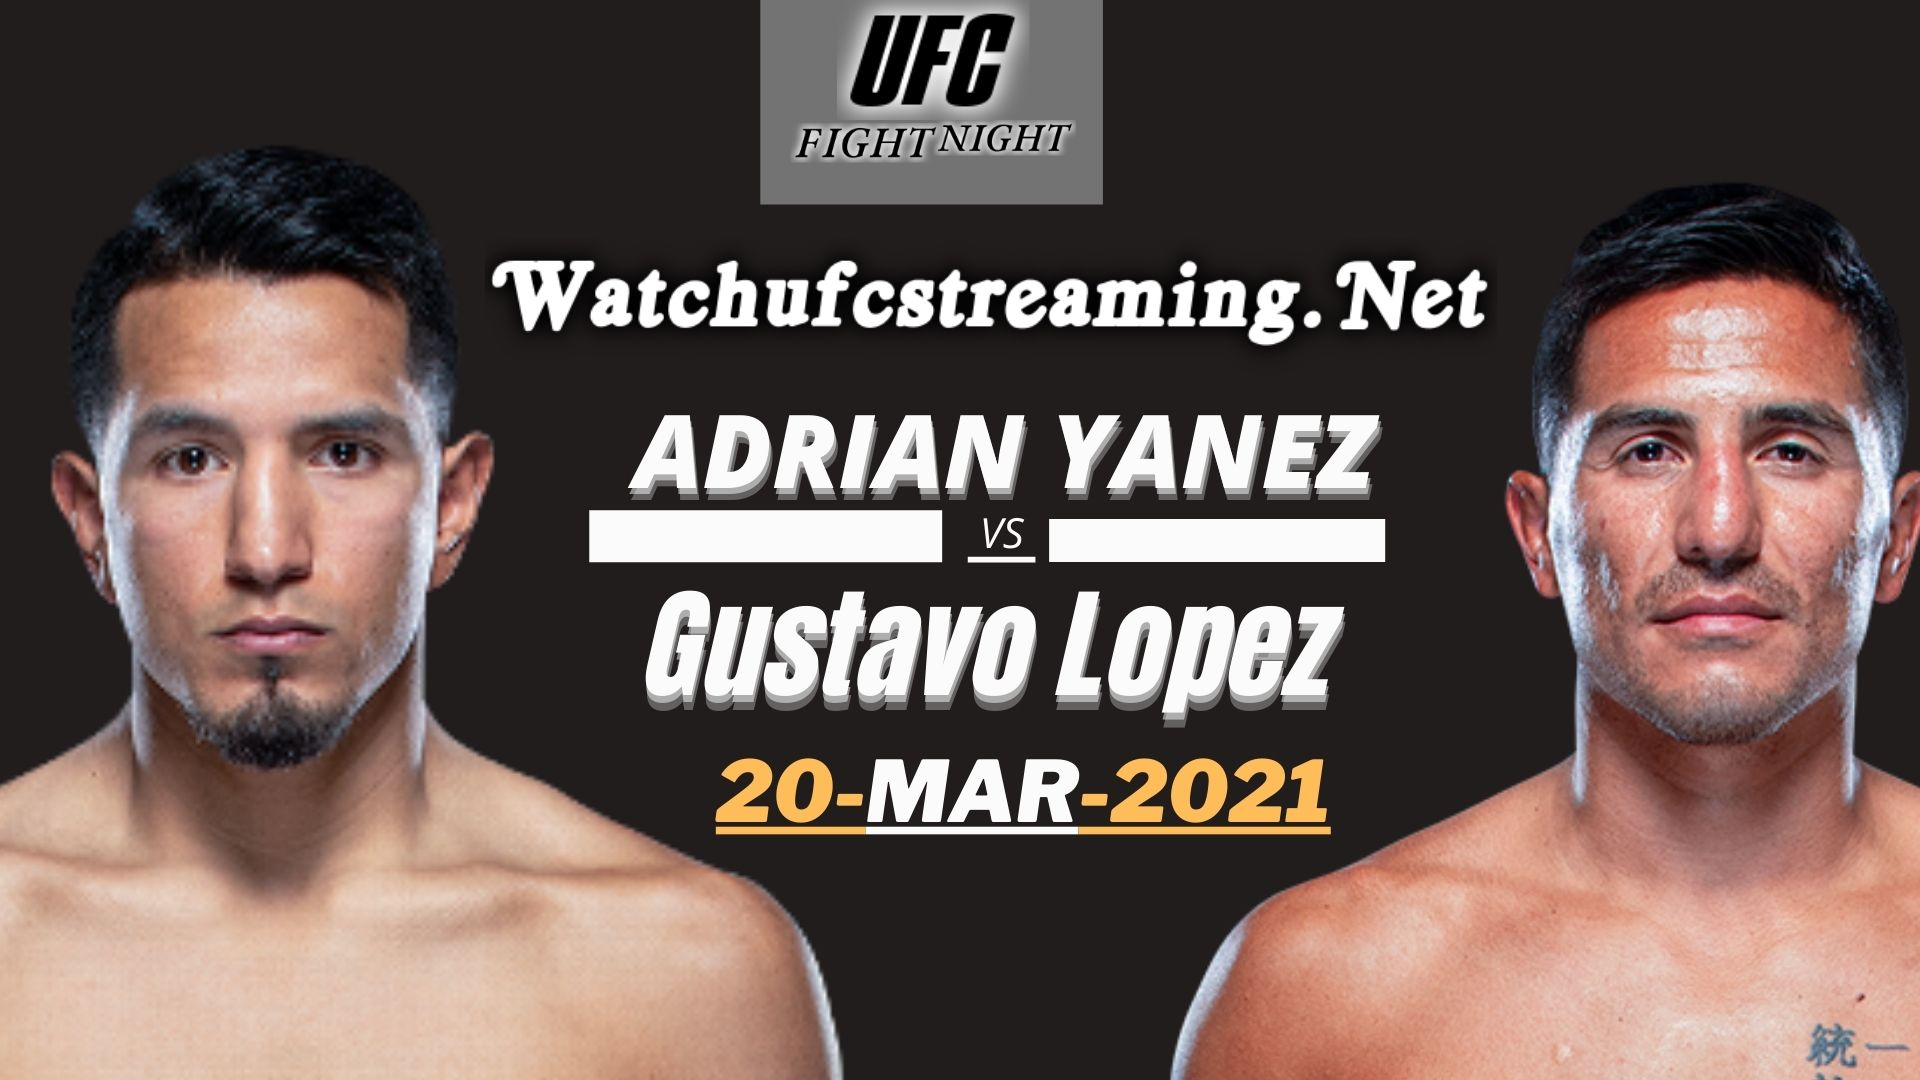 Adrian Yanez Vs Gustavo Lopez Highlights 2021 | UFC Fight Night